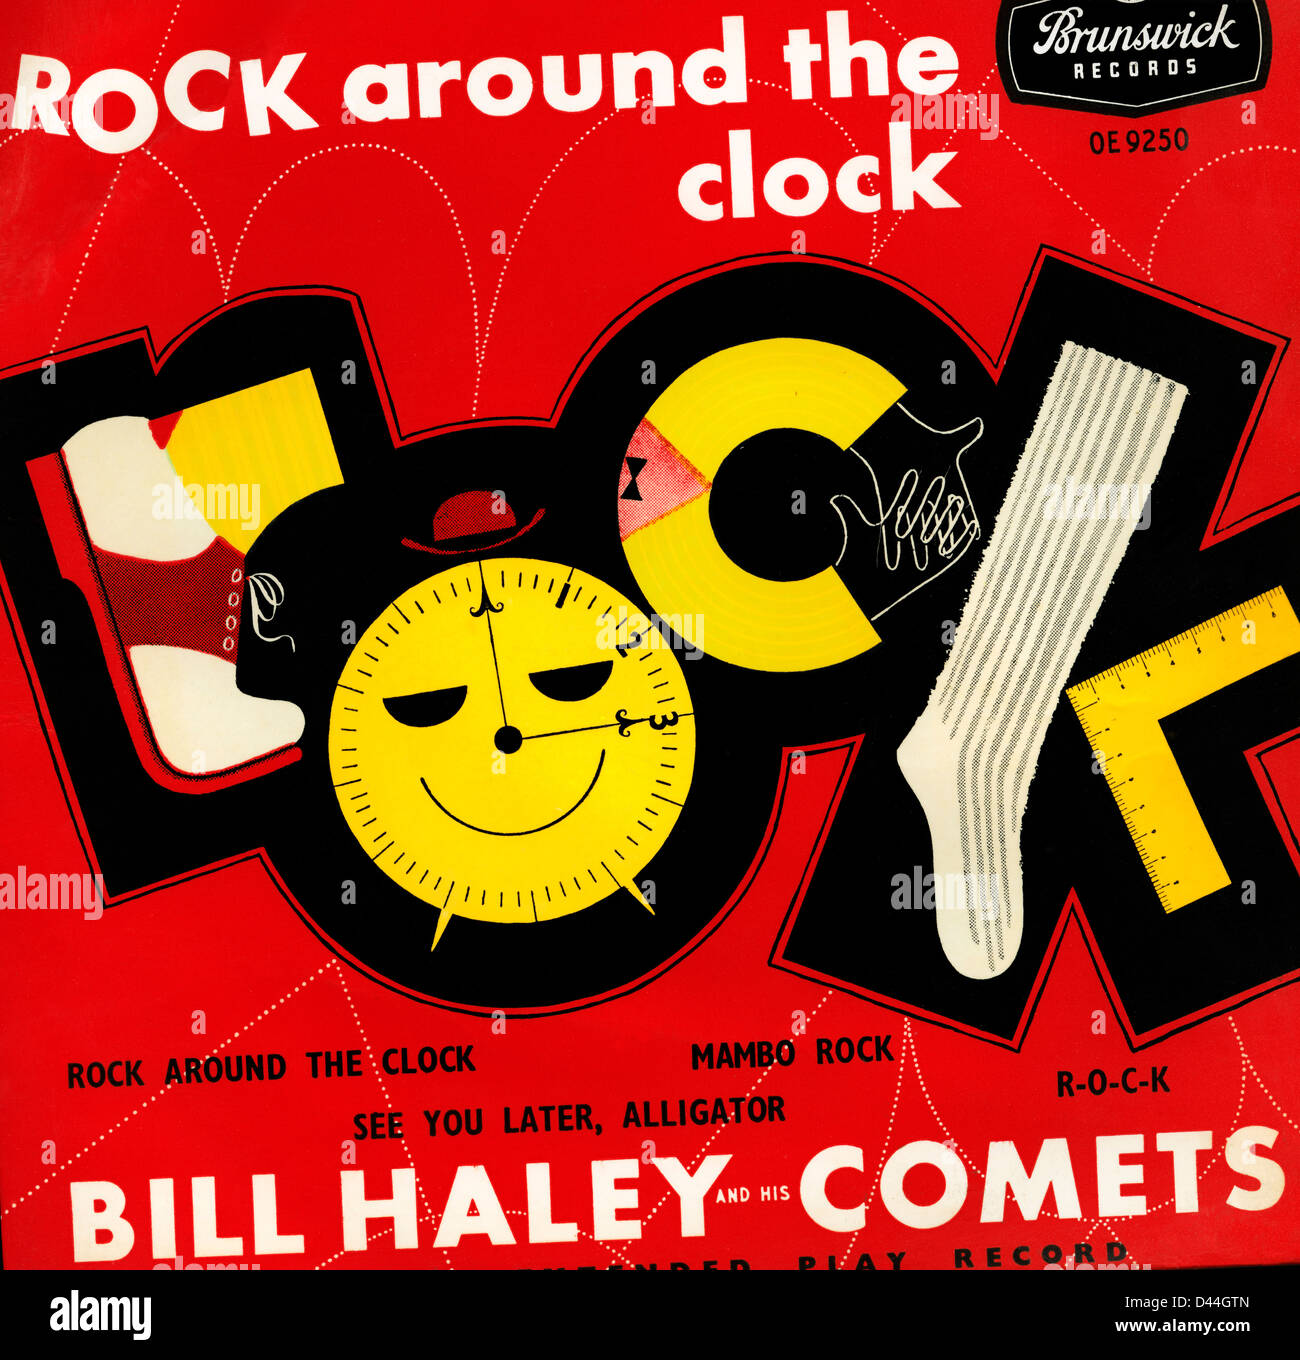 """Rock Around the Clock"" 45 rpm Album cover for number one hit 1954 rock and roll song recorded by Bill Haley and Stock Photo"